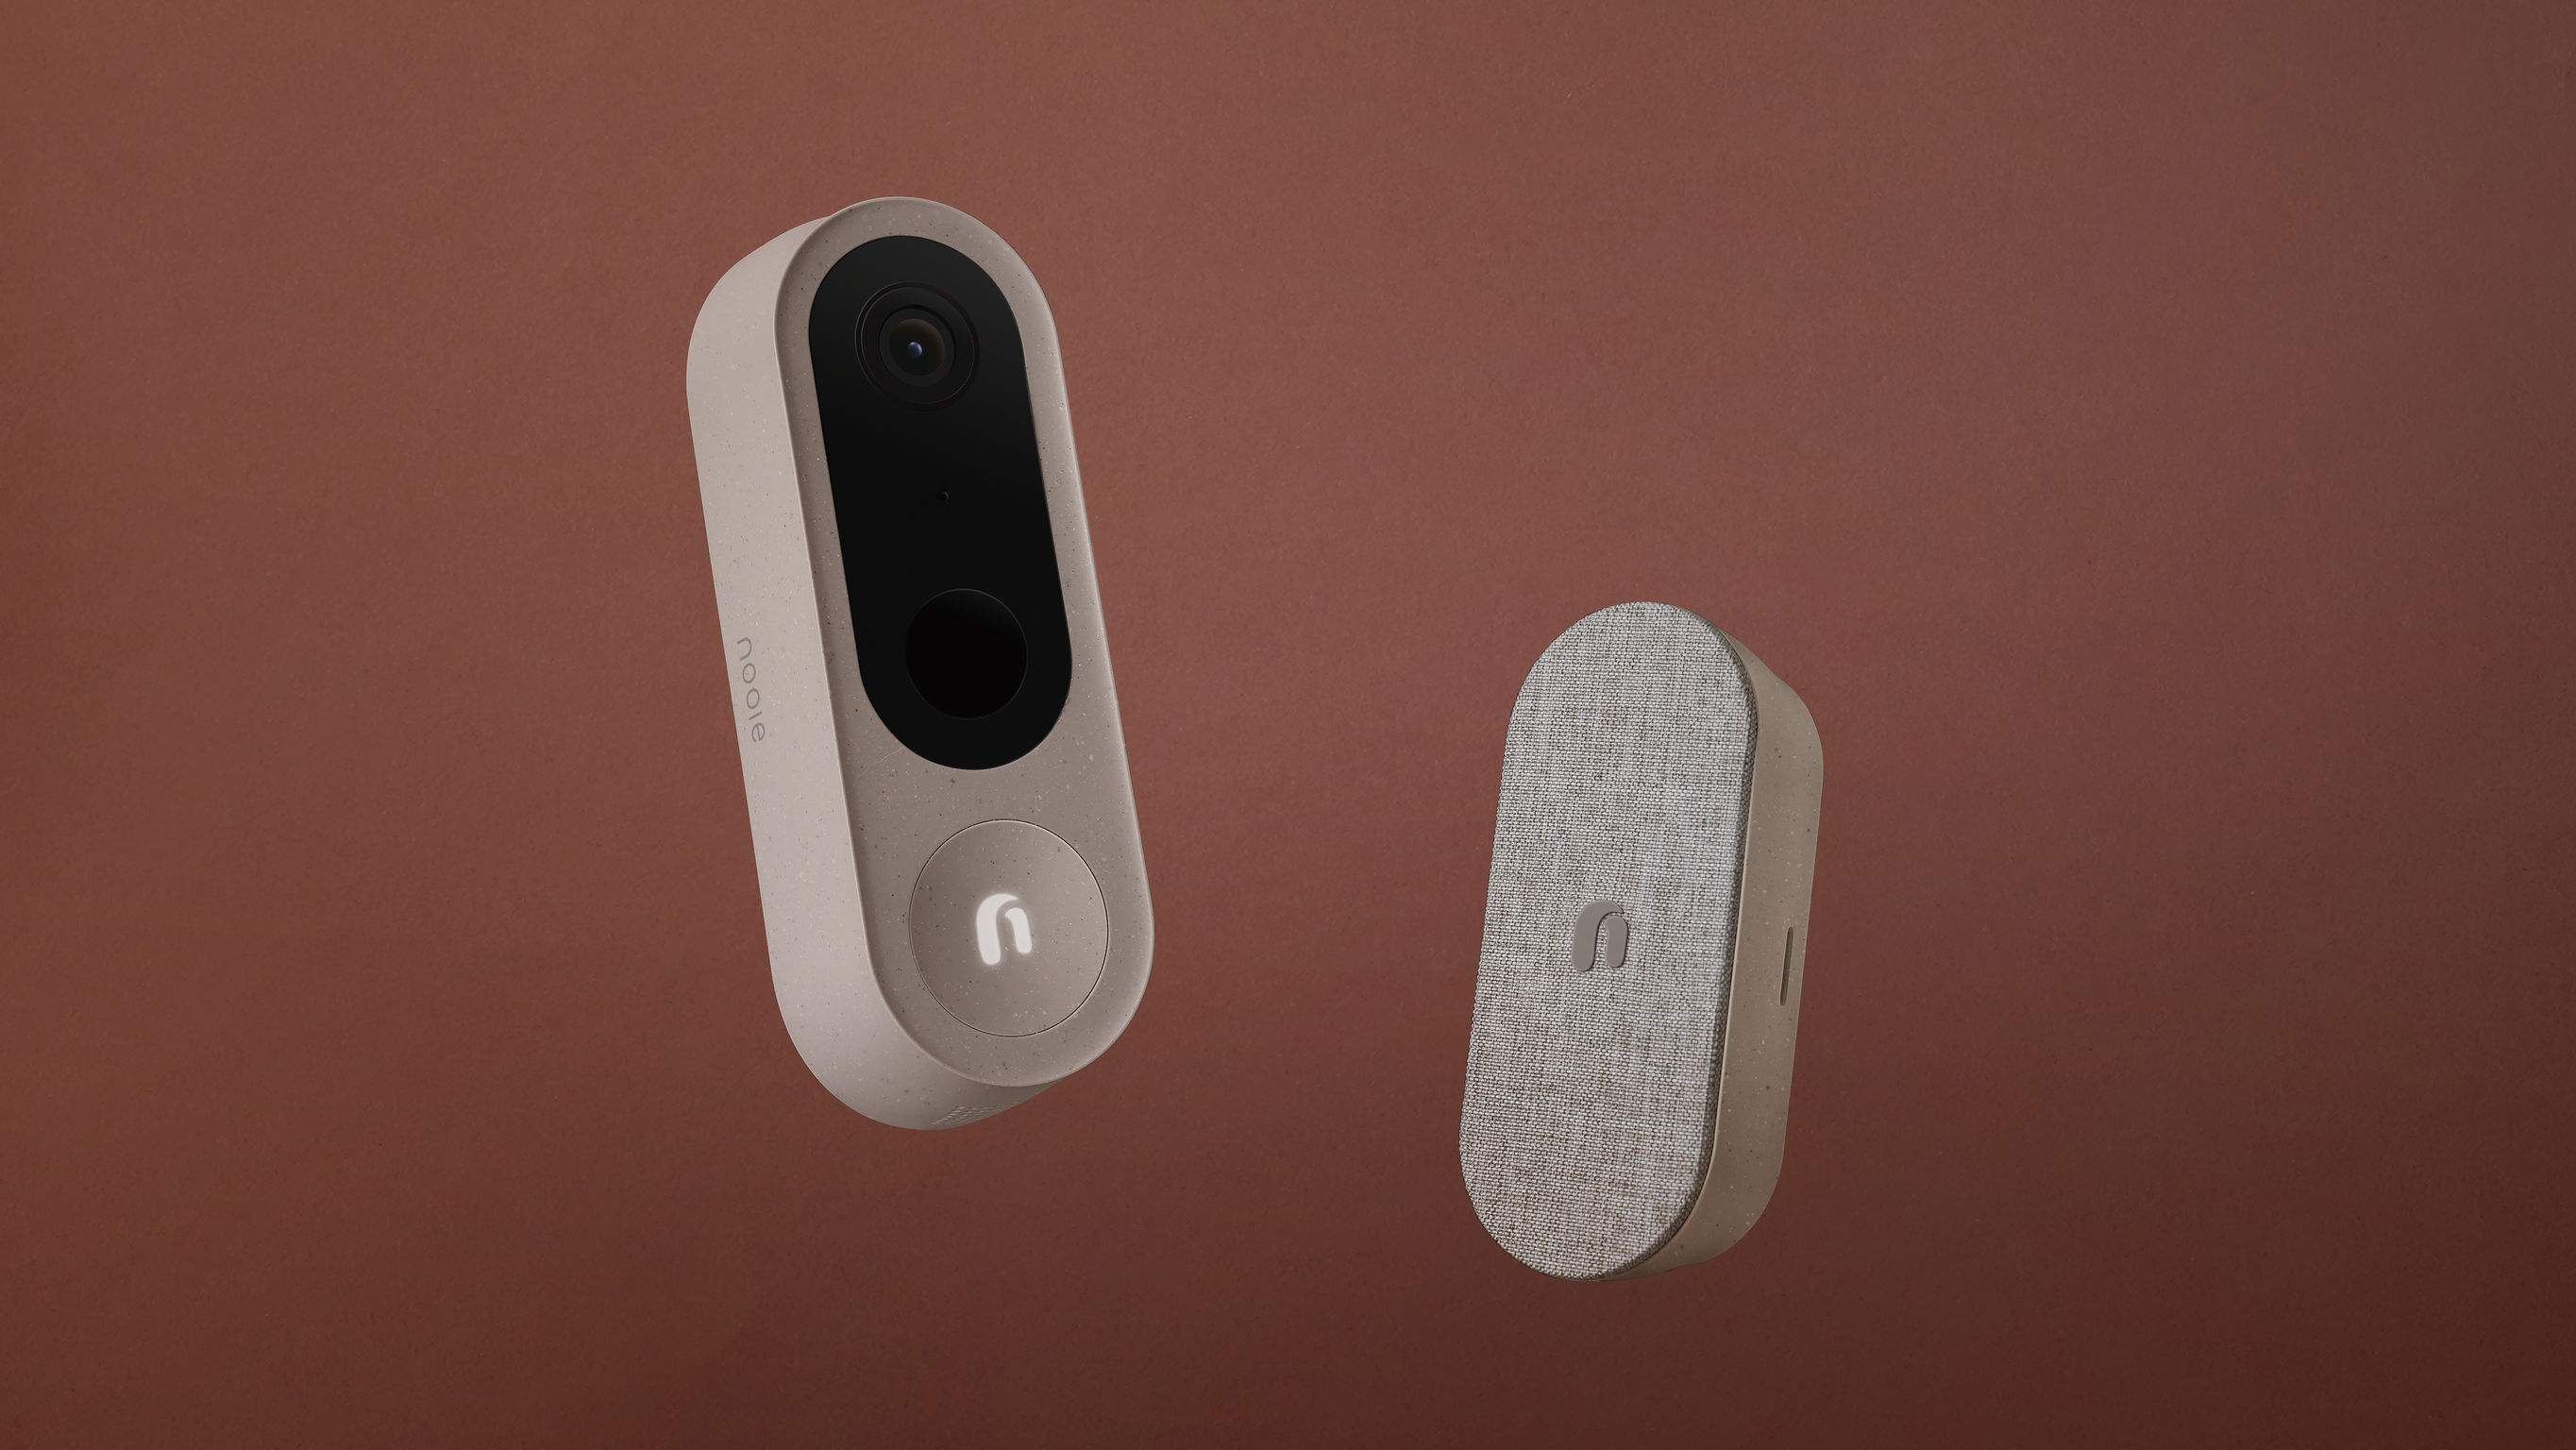 Nooie Doorbell and Base Station